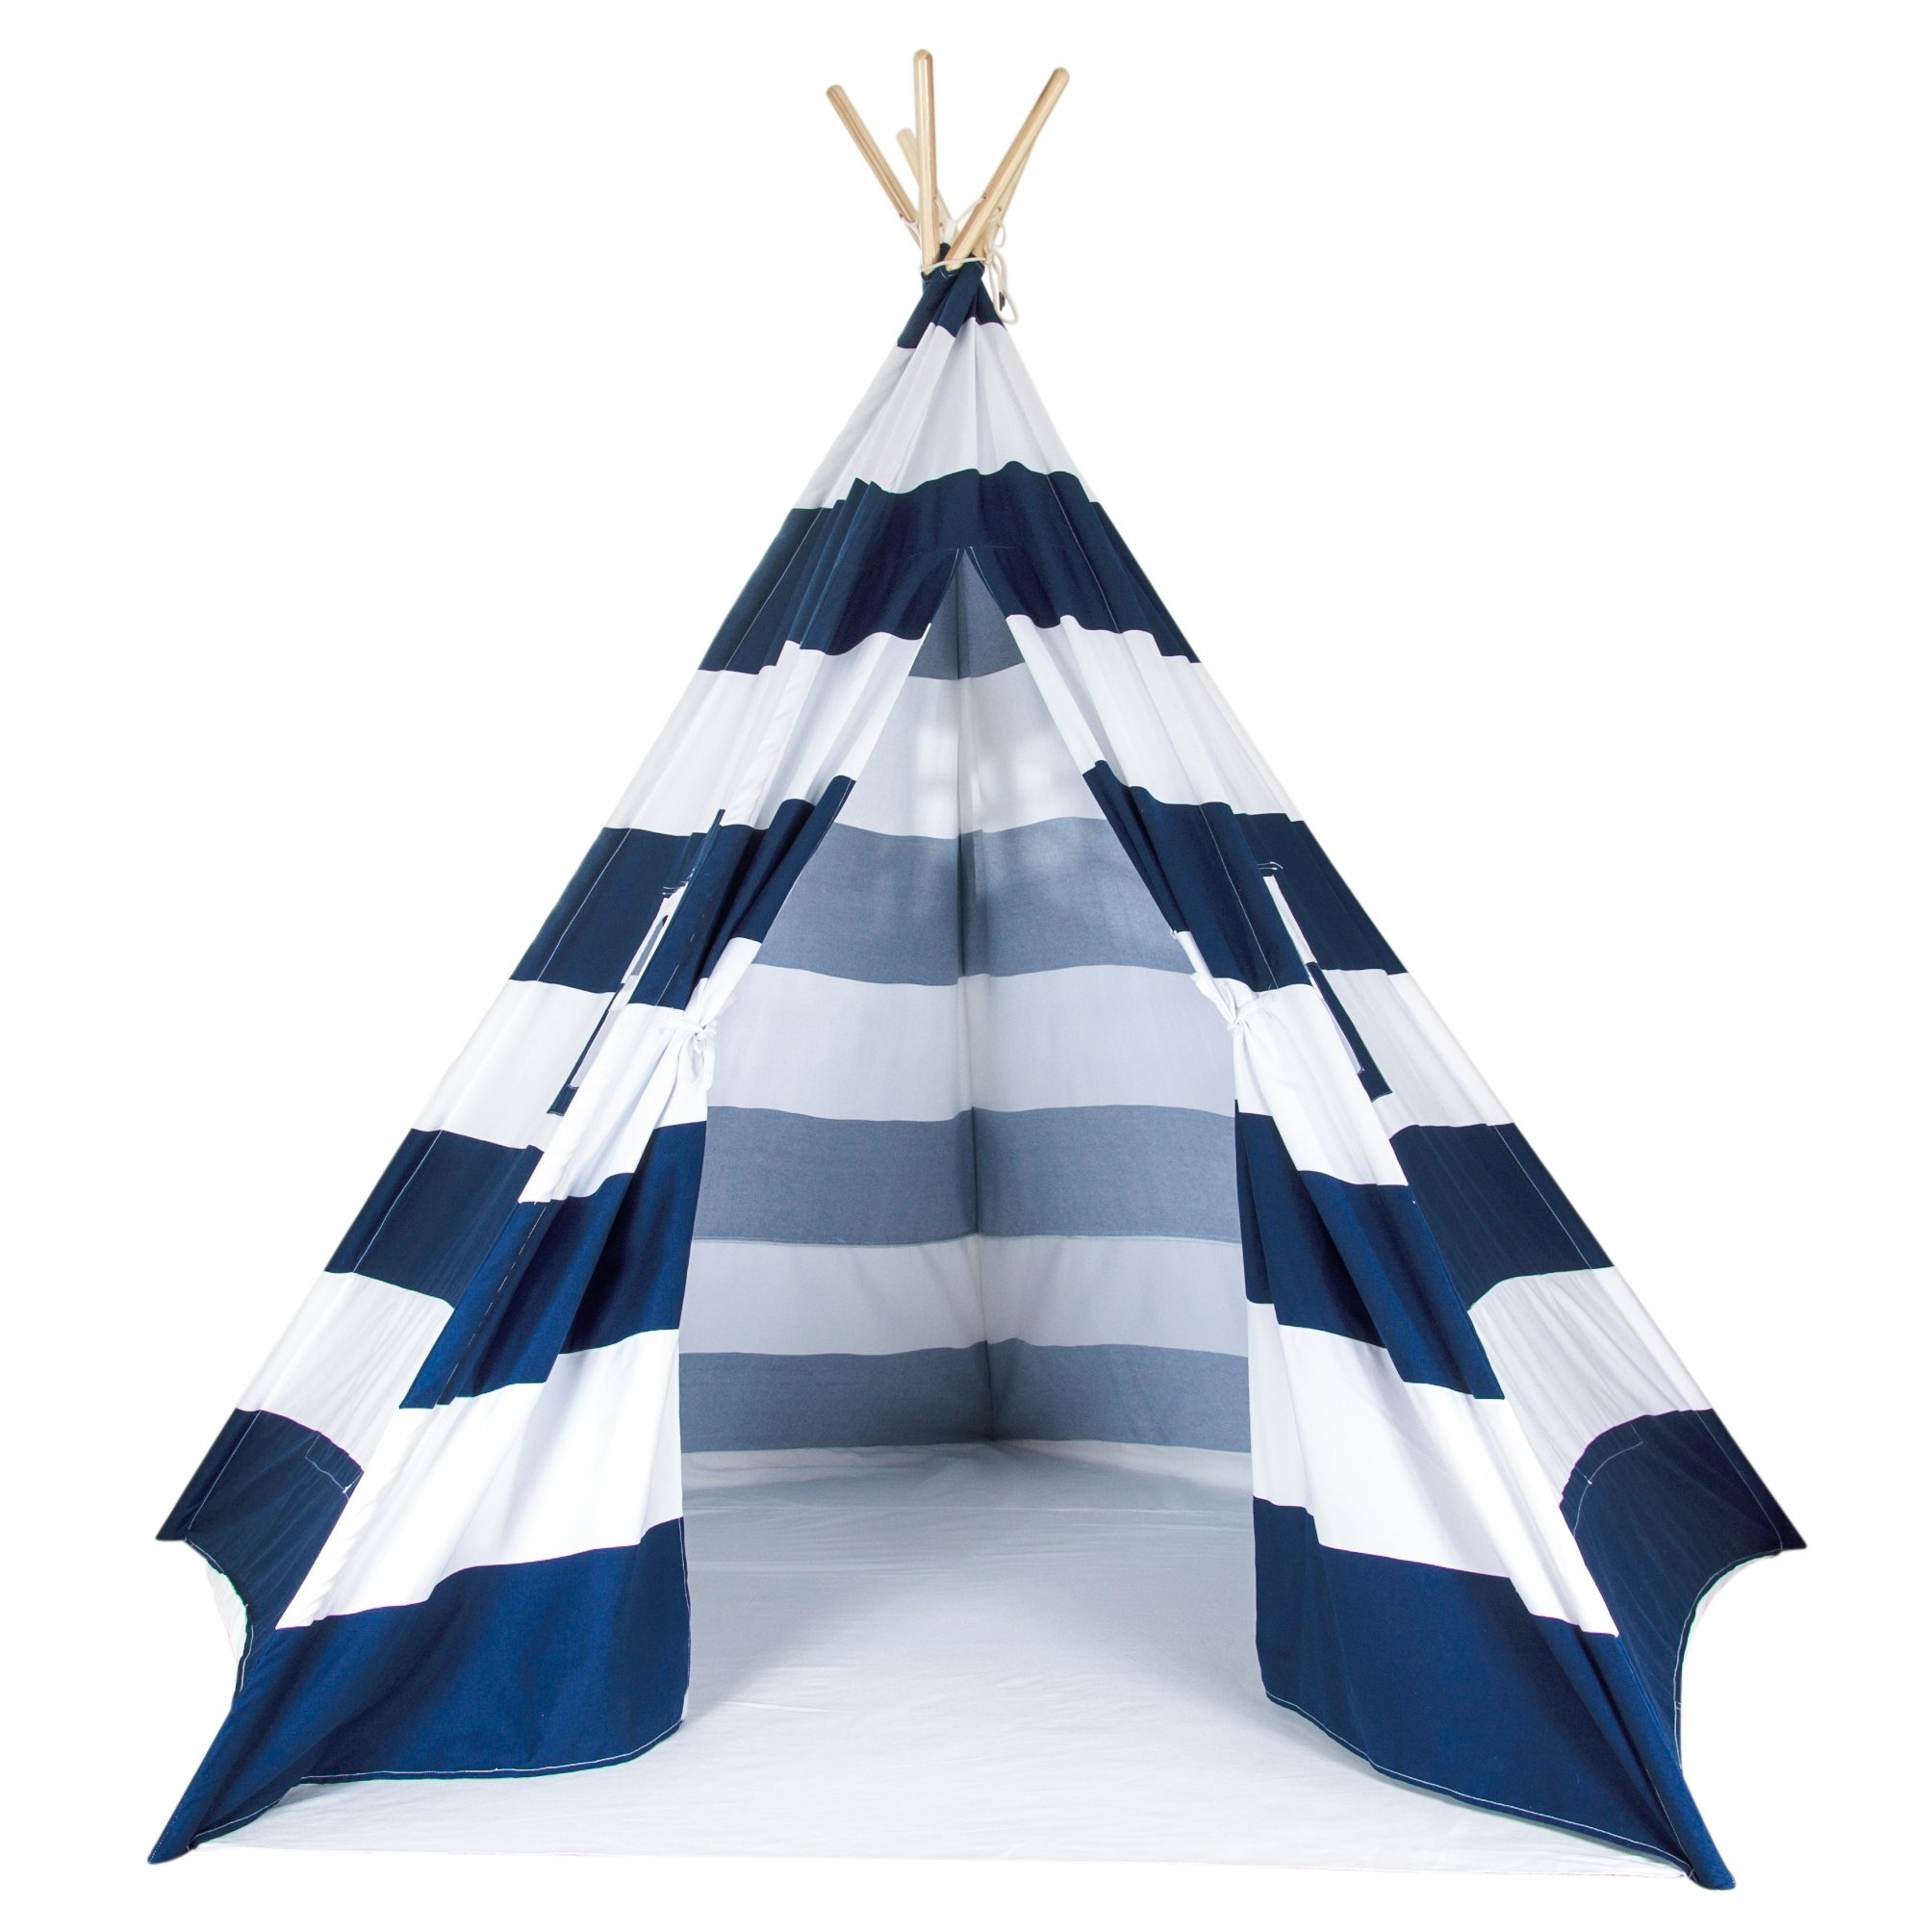 A Mustard Seed Toys Large Kids Teepee Tent, Big Enough for The Whole Family, 100% Natural Cotton Canvas Tent with Carrying Case, No Extra Chemicals (Navy)